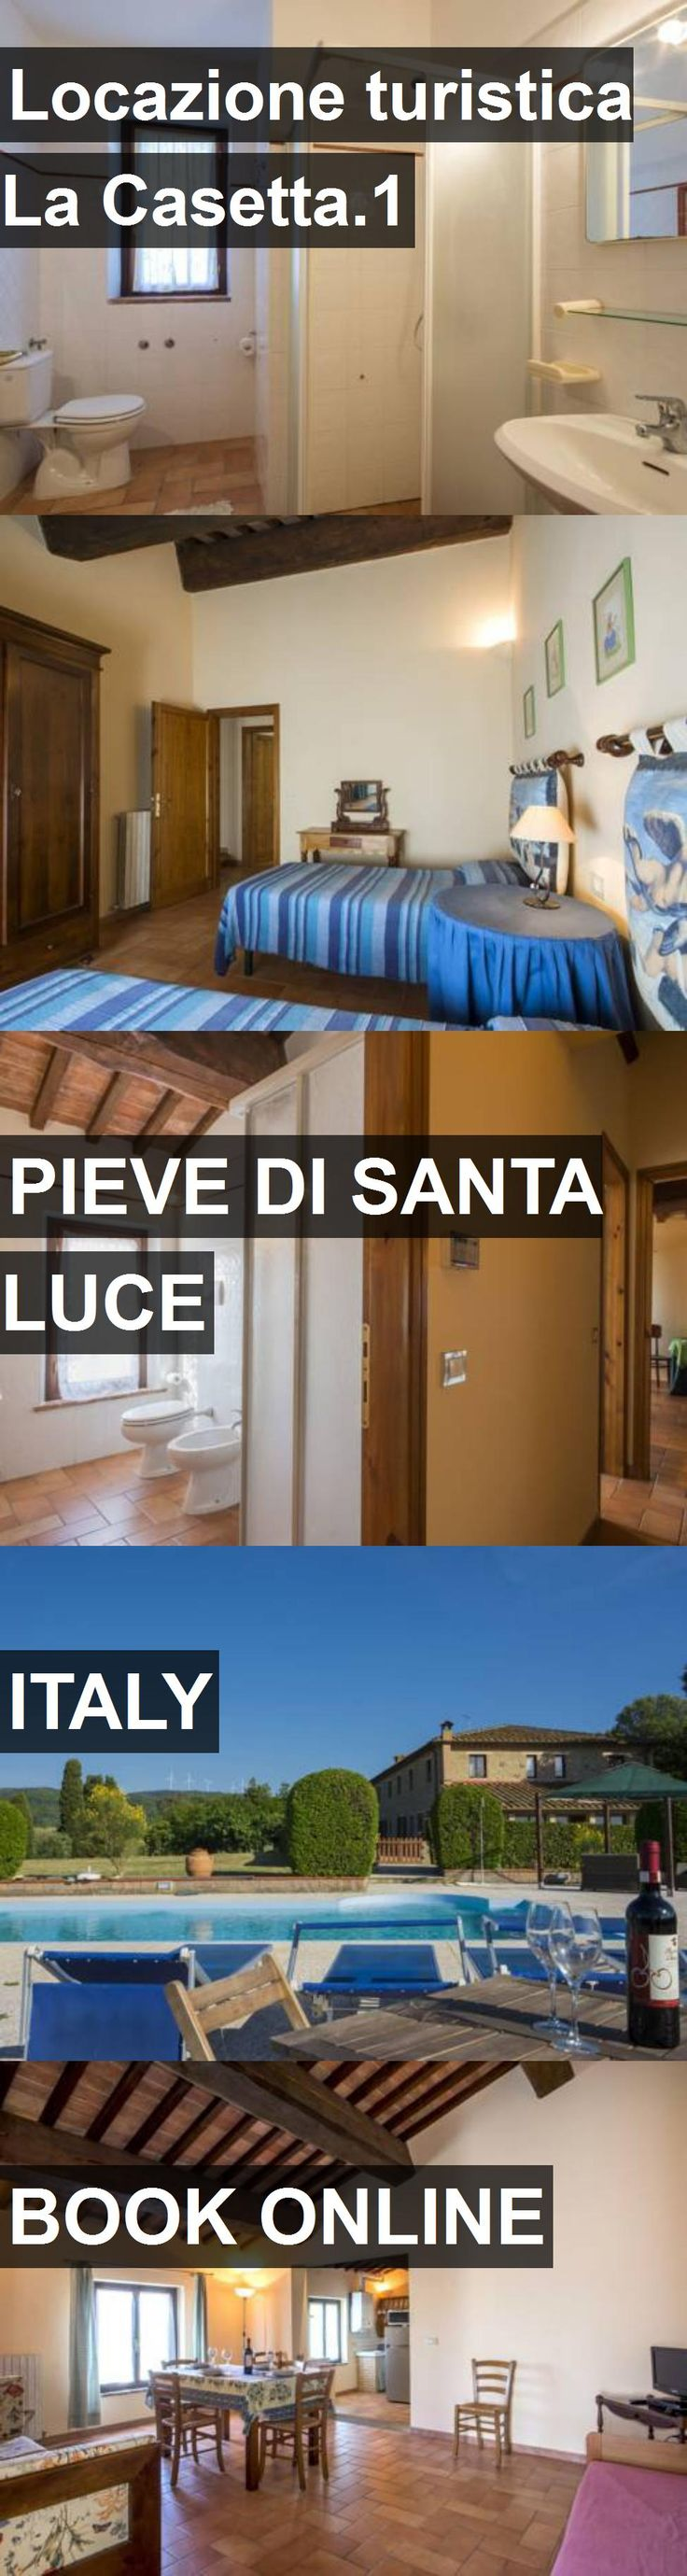 Hotel Locazione turistica La Casetta.1 in Pieve di Santa Luce, Italy. For more information, photos, reviews and best prices please follow the link. #Italy #PievediSantaLuce #travel #vacation #hotel